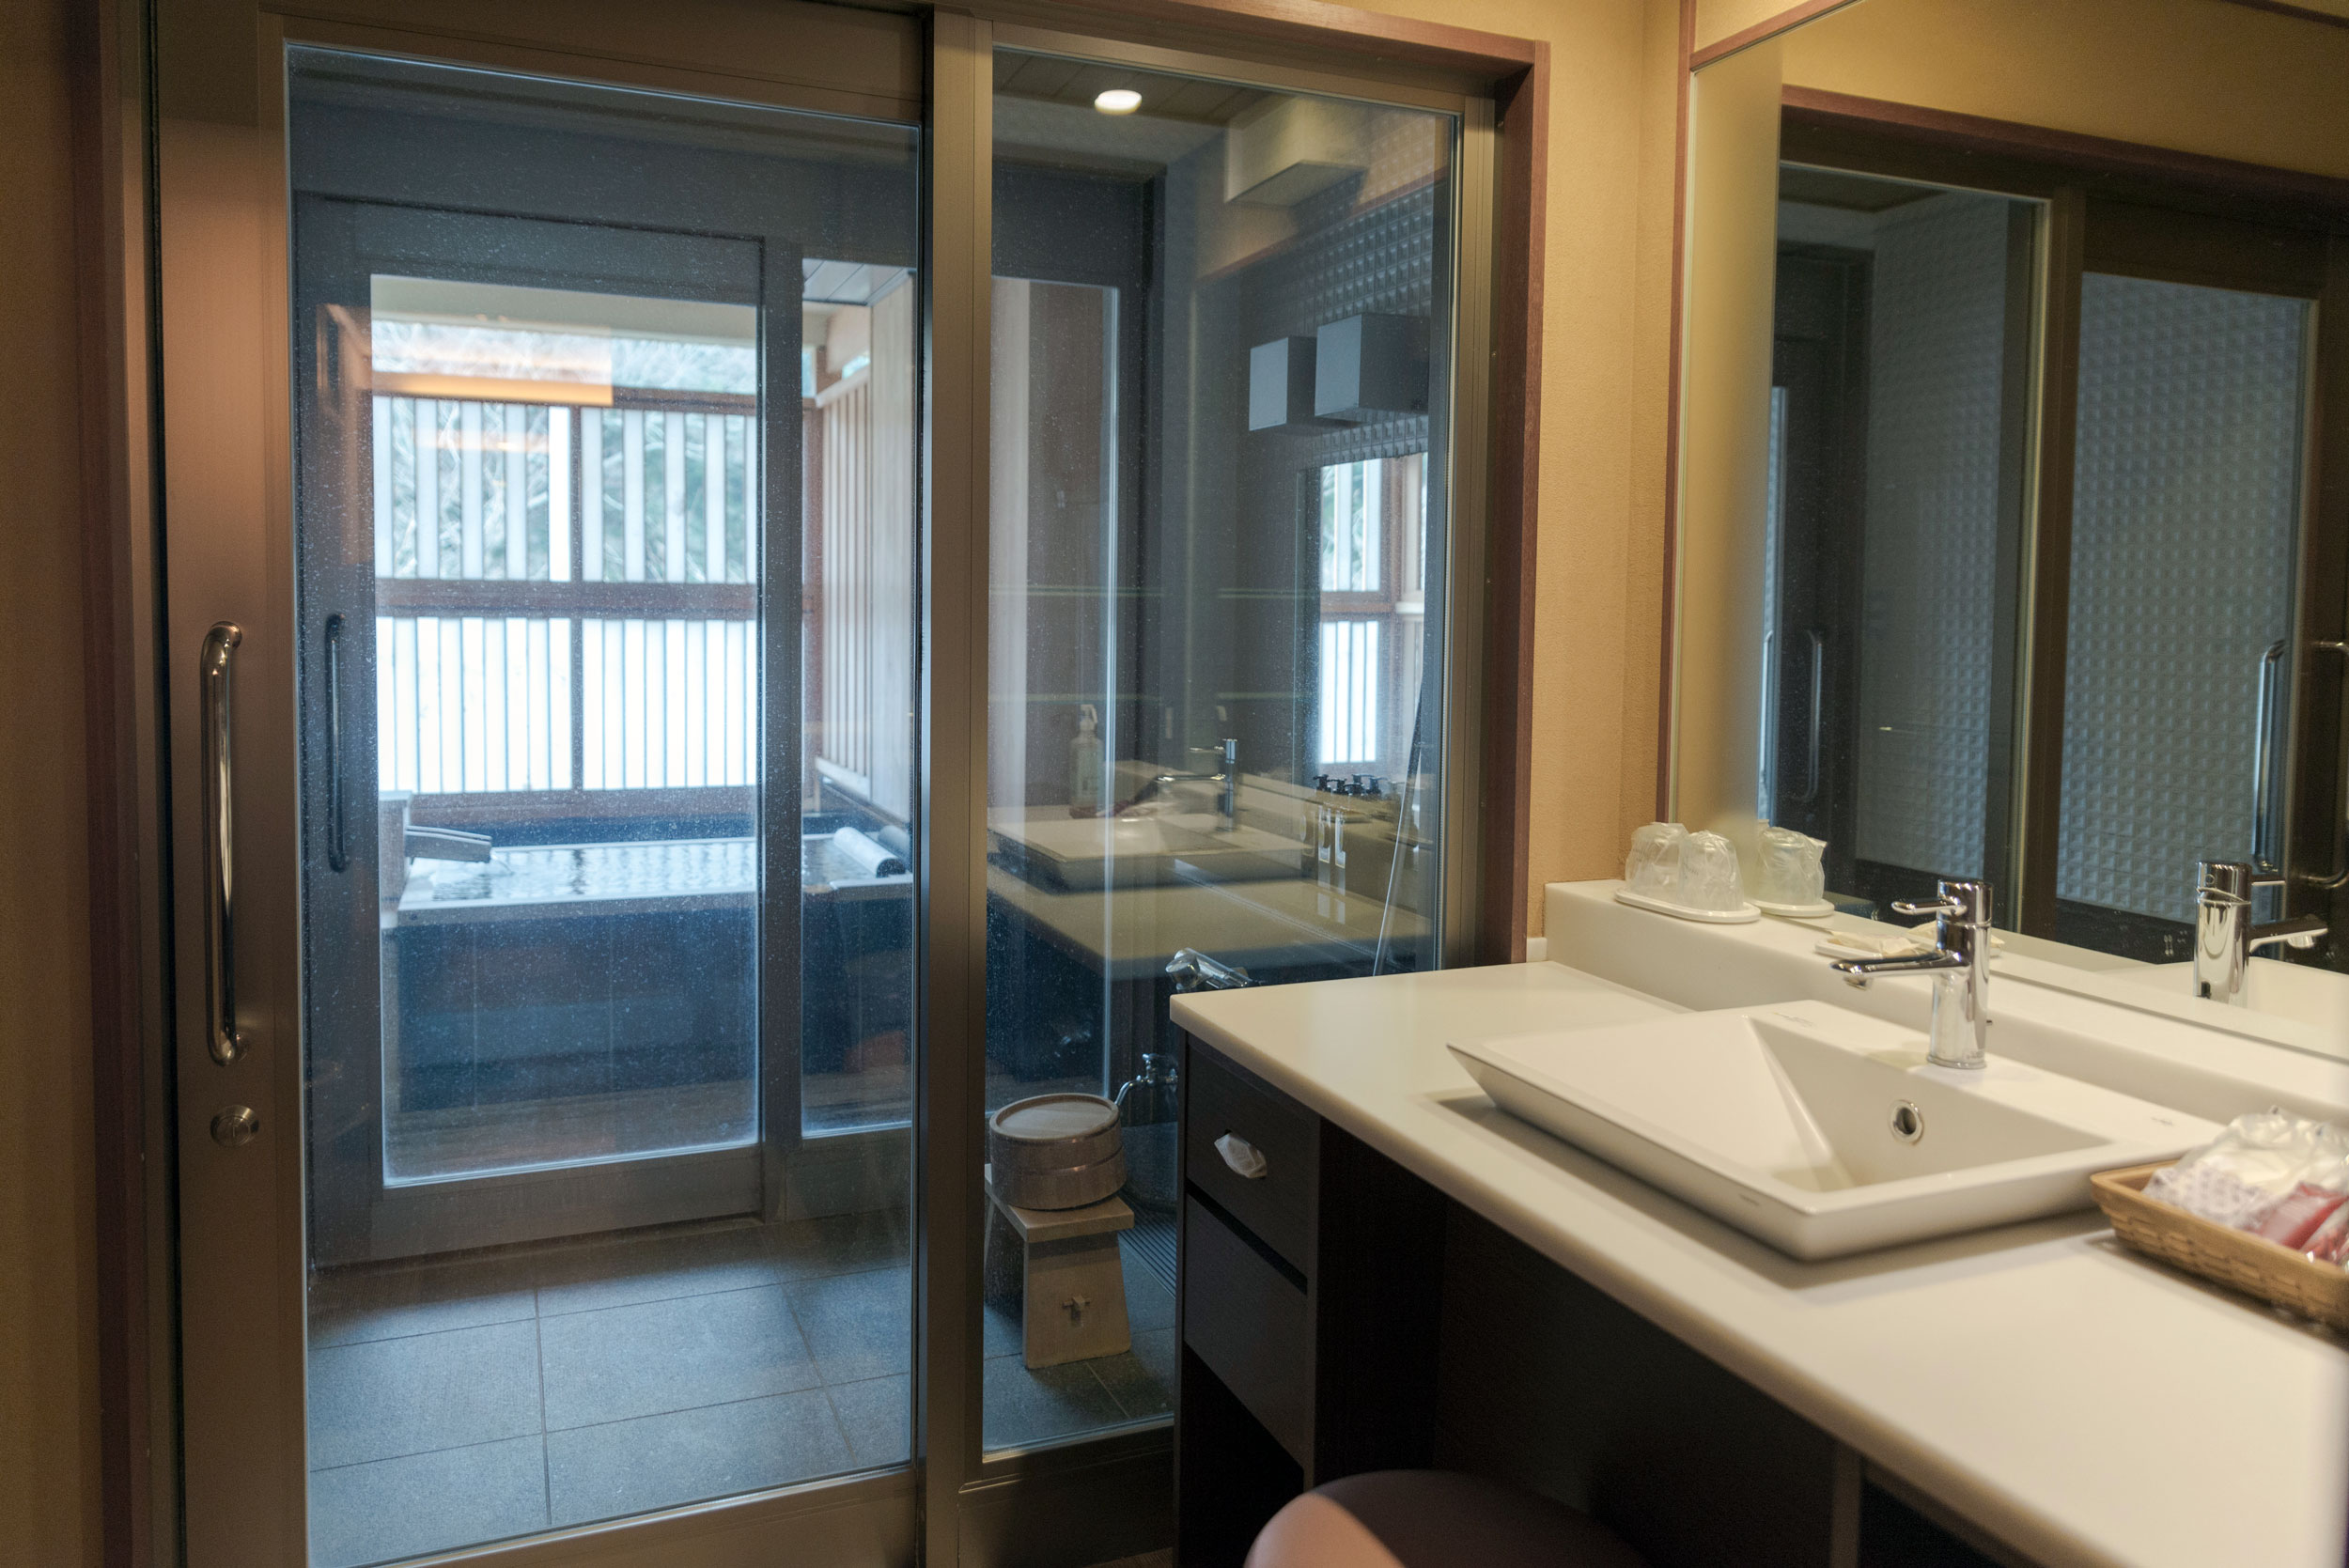 Bathroom with dual sinks, shower, and the private onsen tub outside